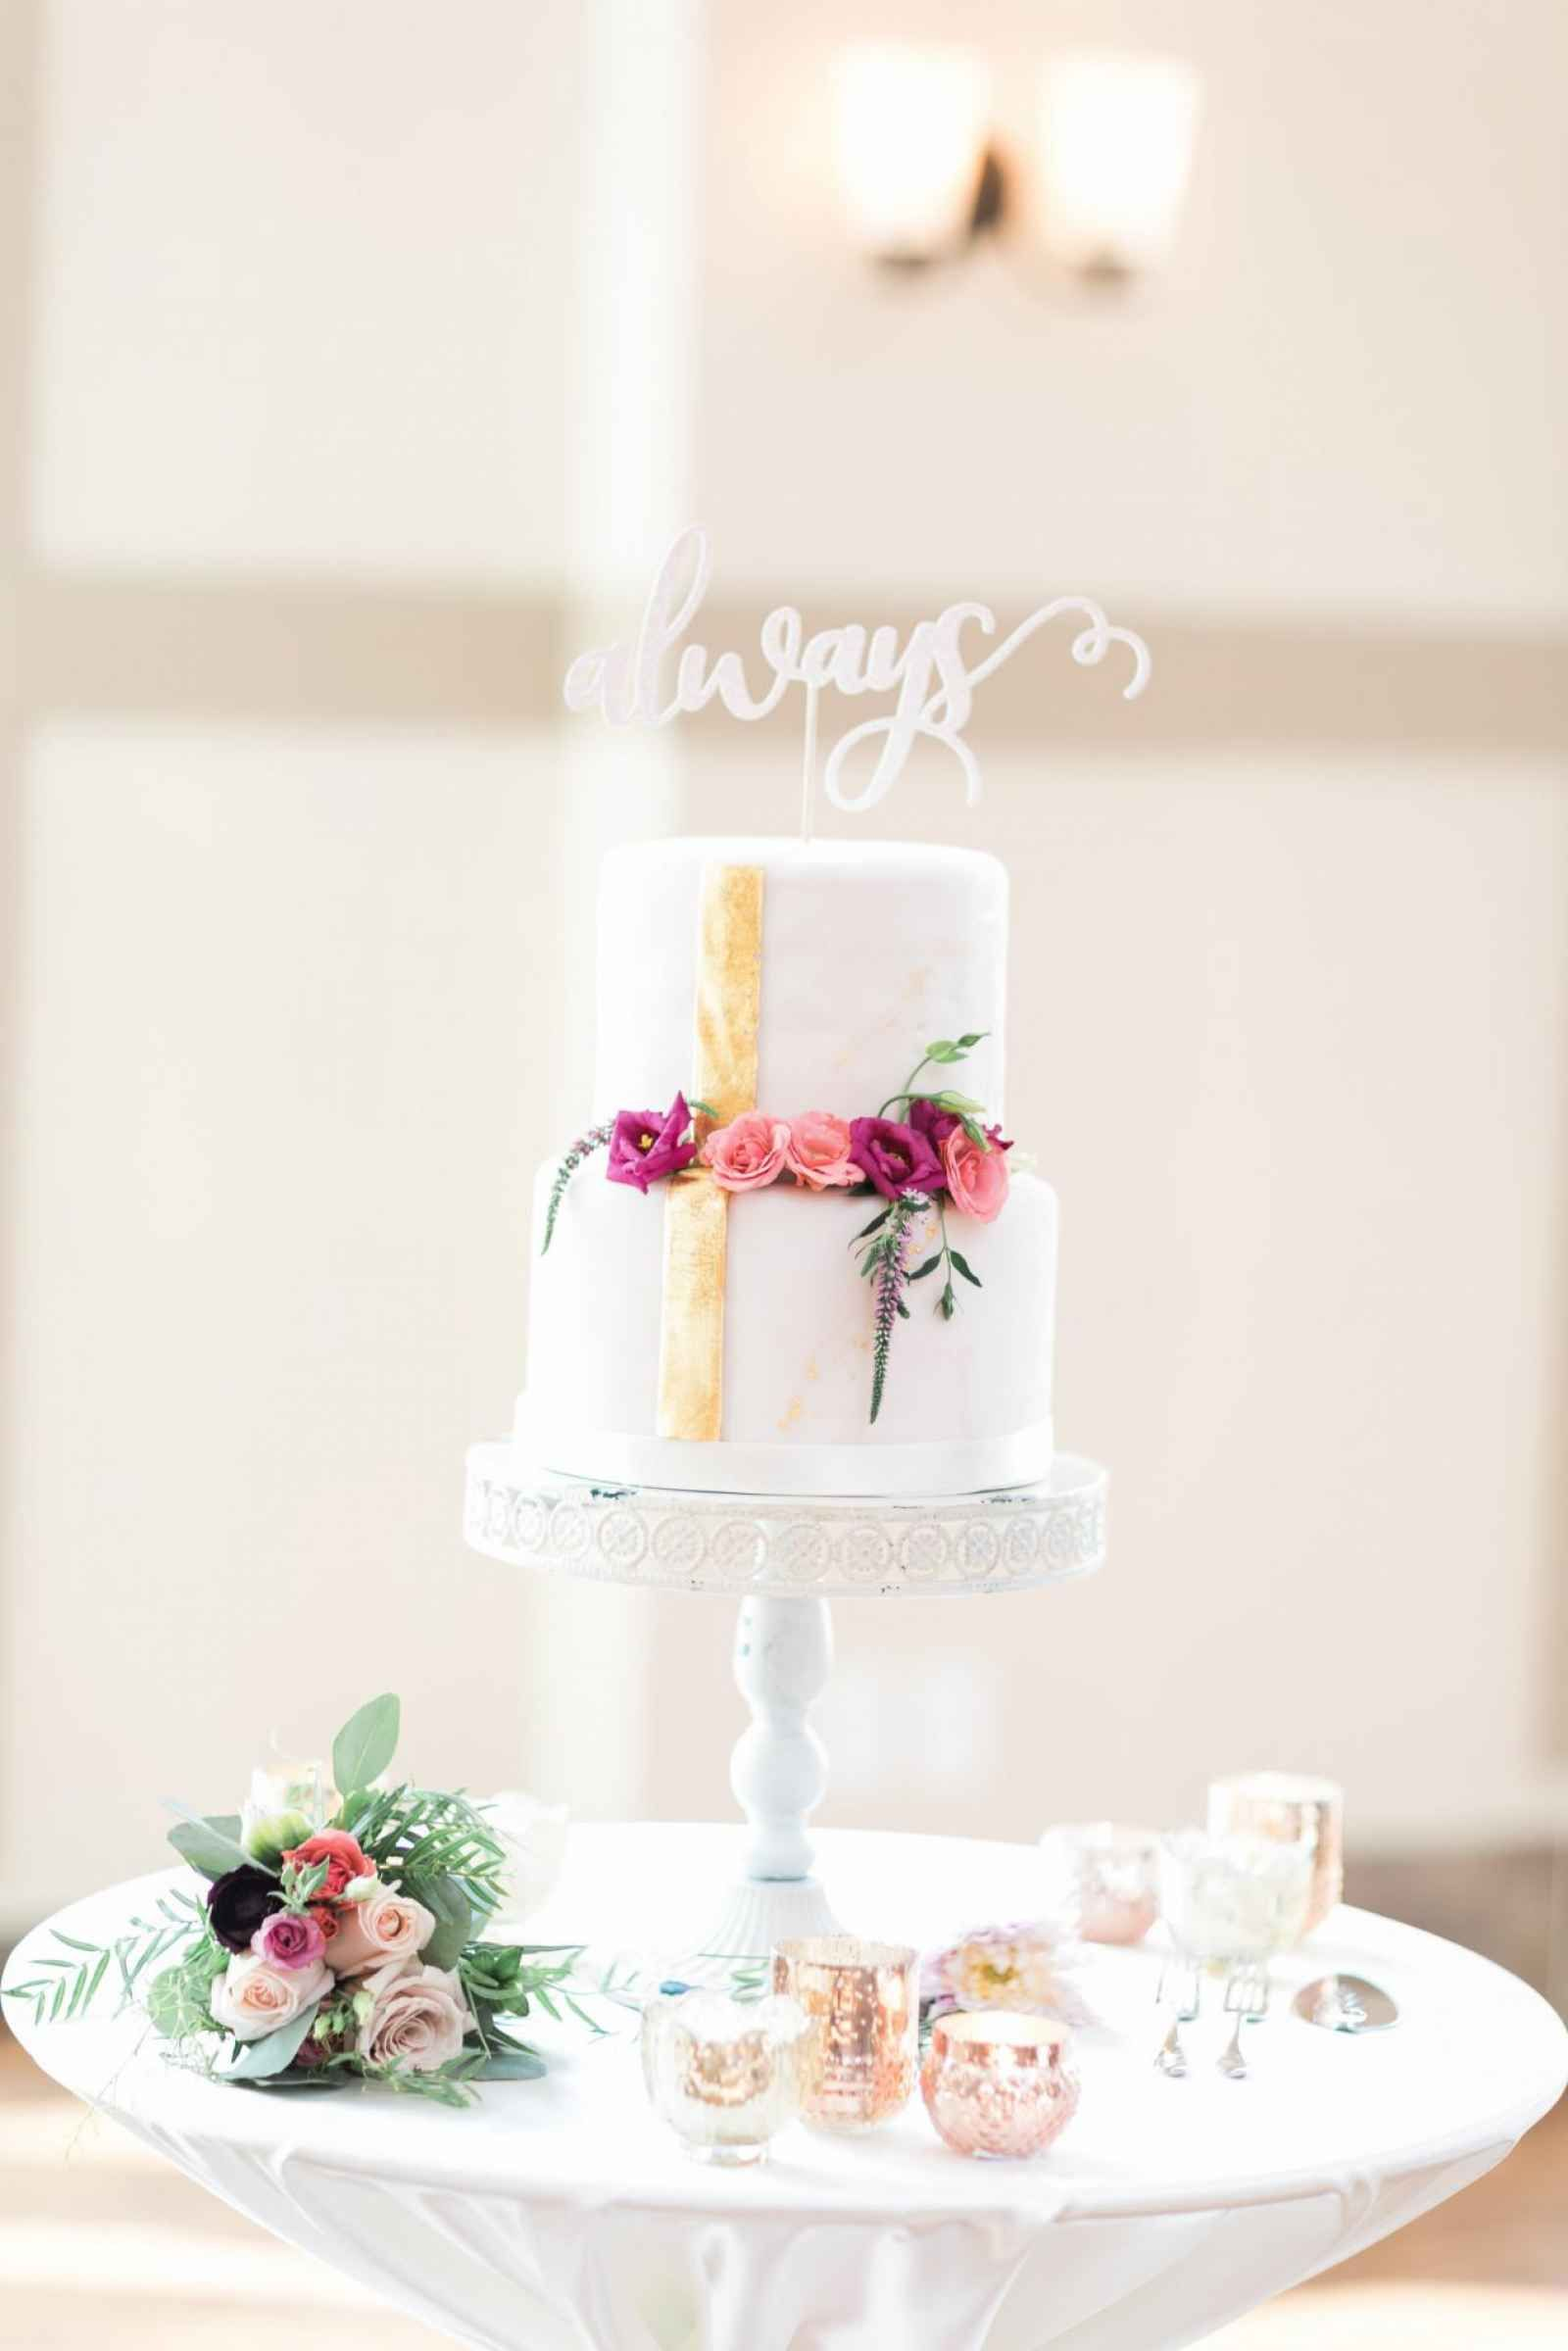 Simple and sweet cake with florals and \